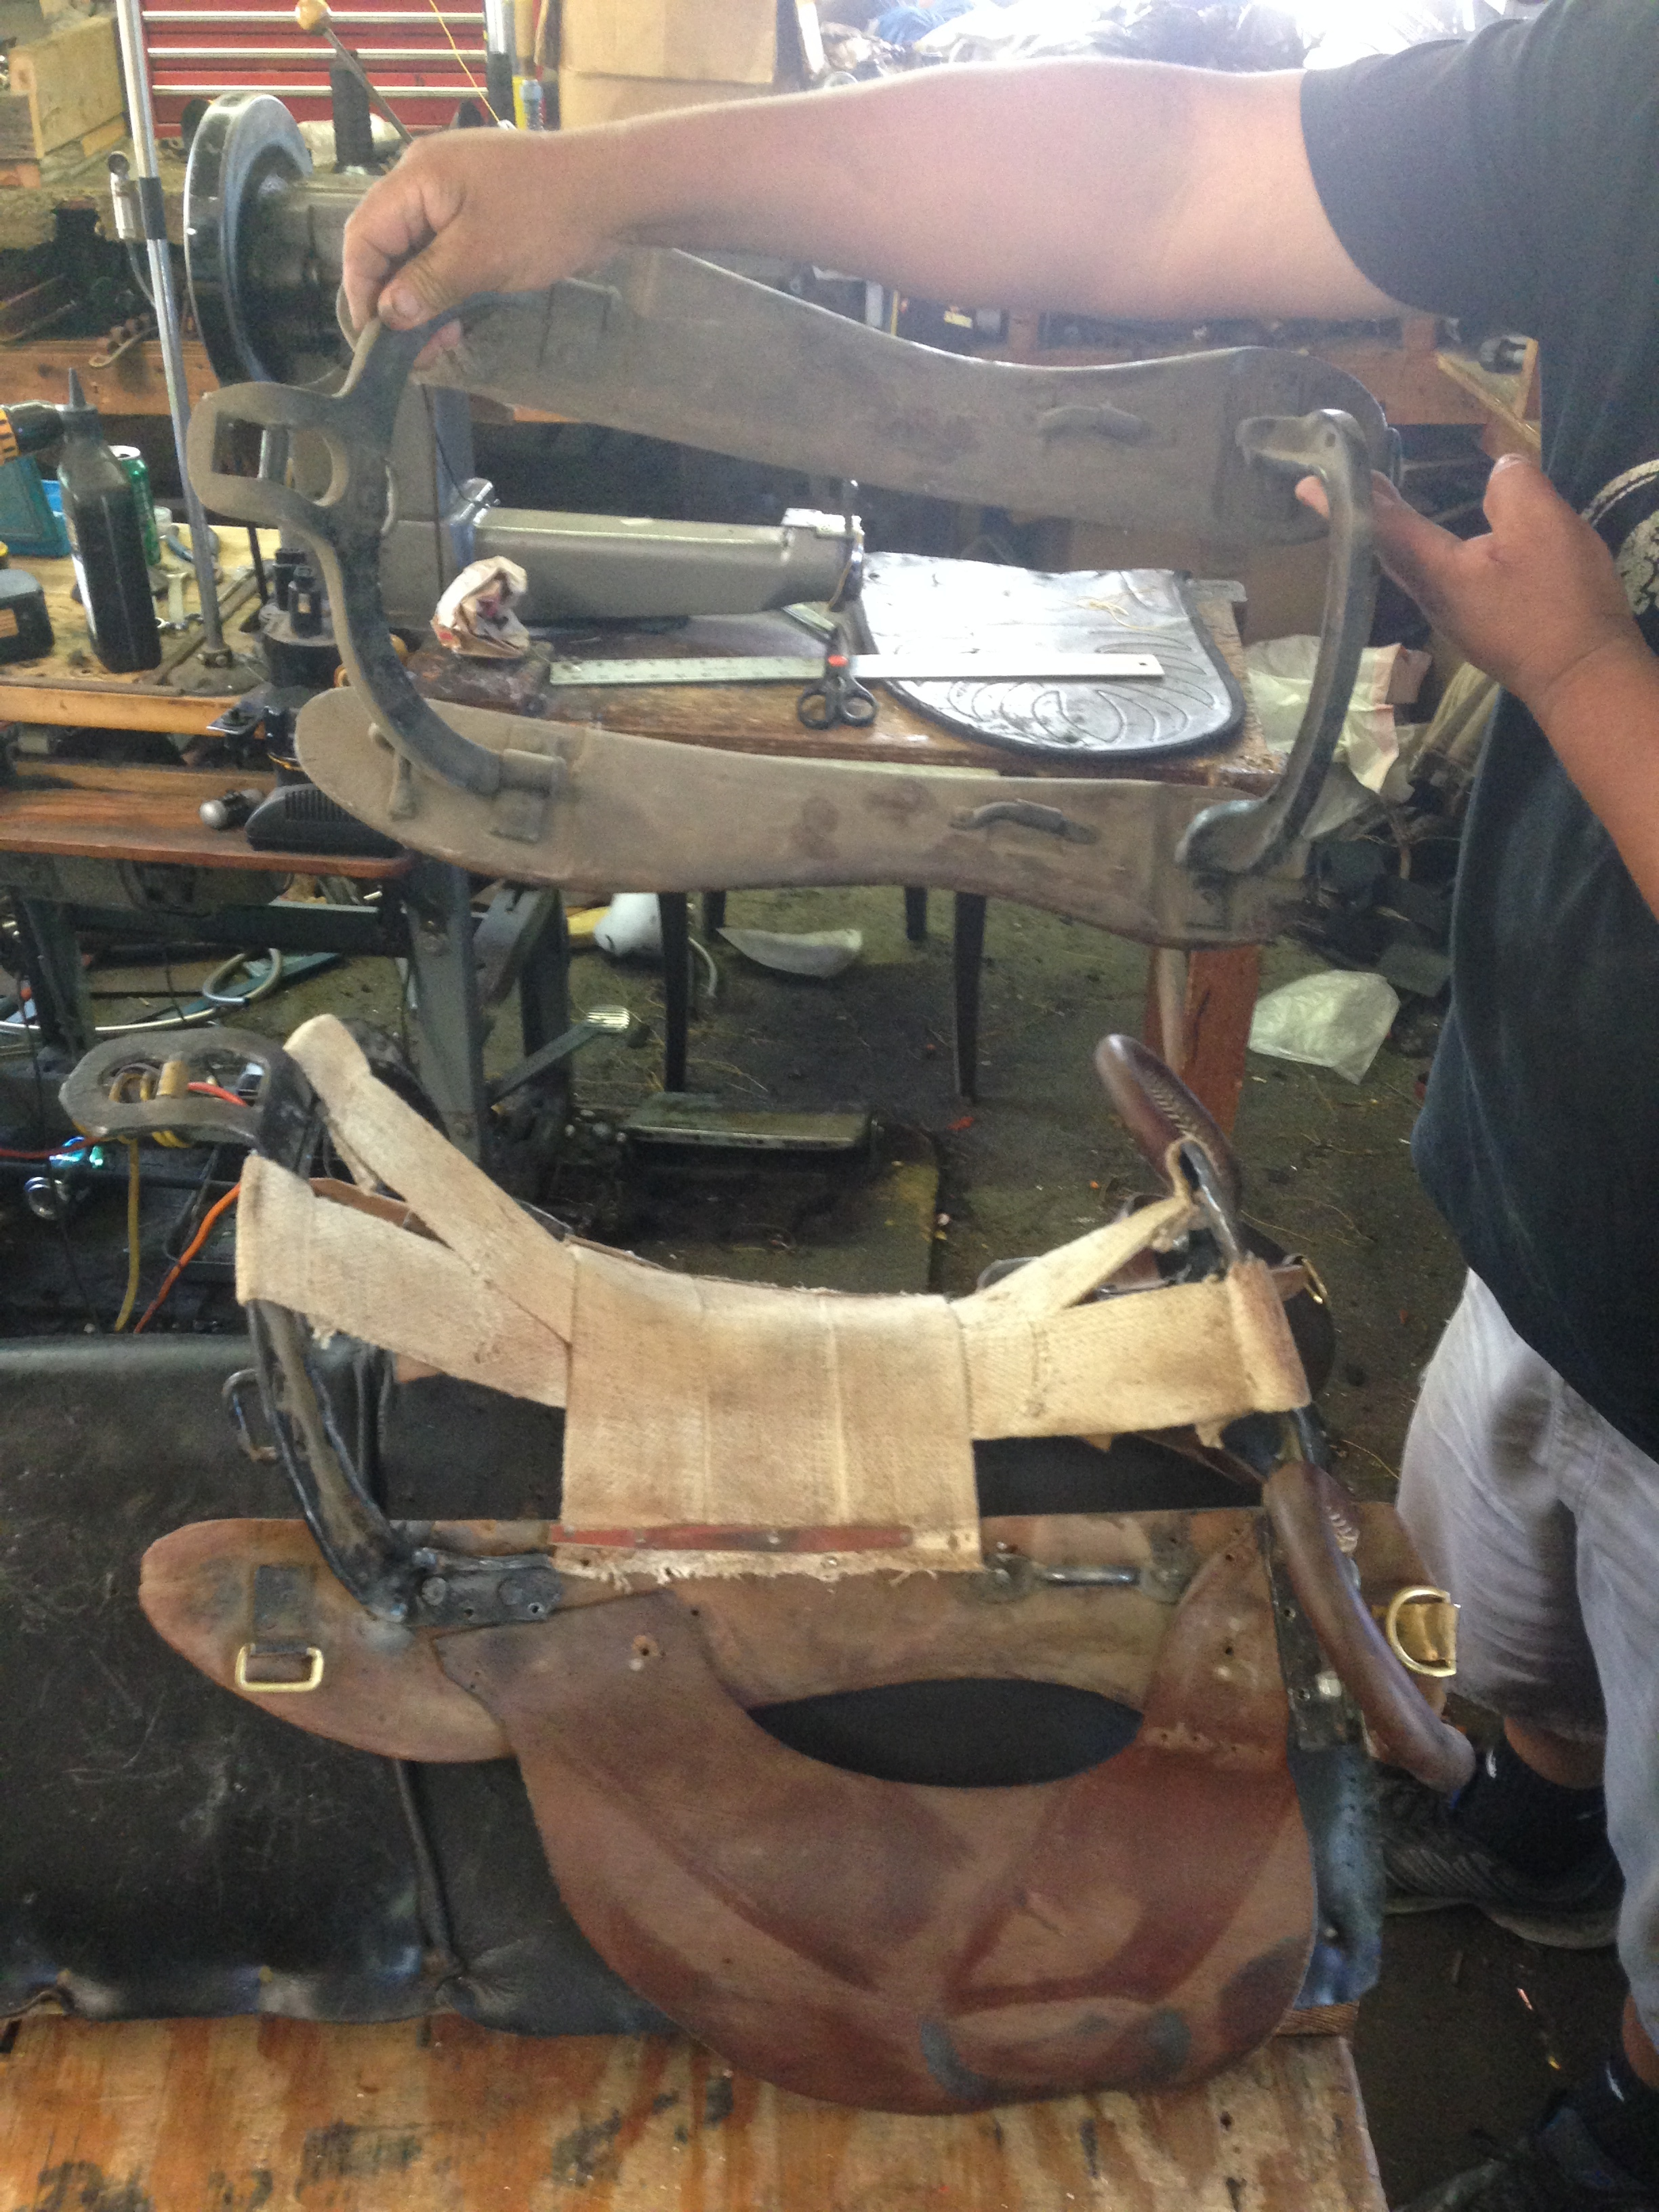 We have rebuilt a tree to replace into a 200 year old military saddle.